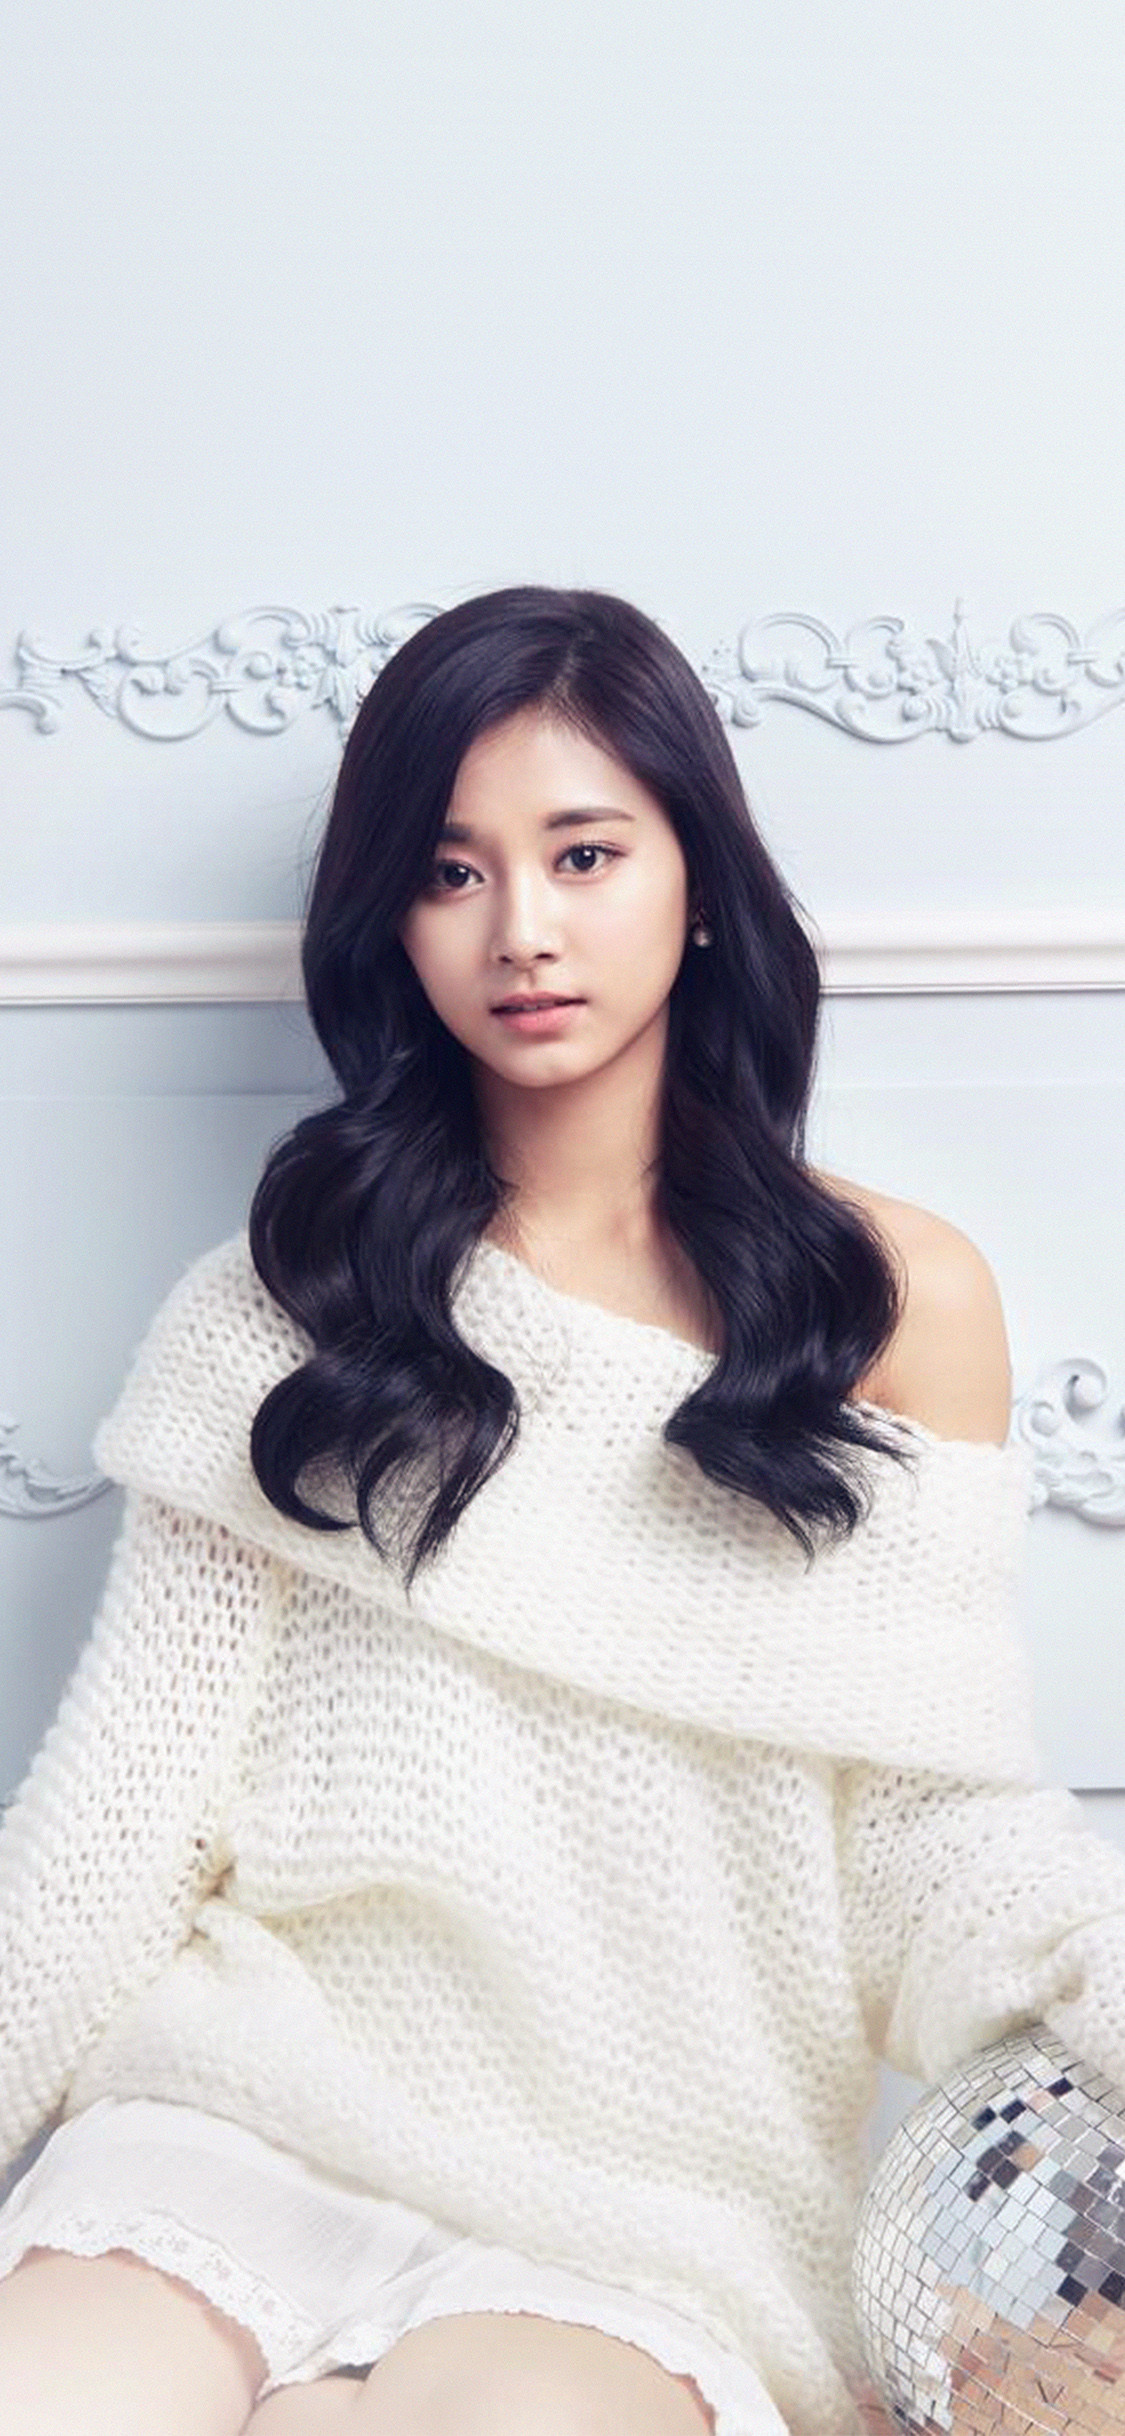 Cute Cheer Wallpapers Tzuyu Wallpapers 57 Images